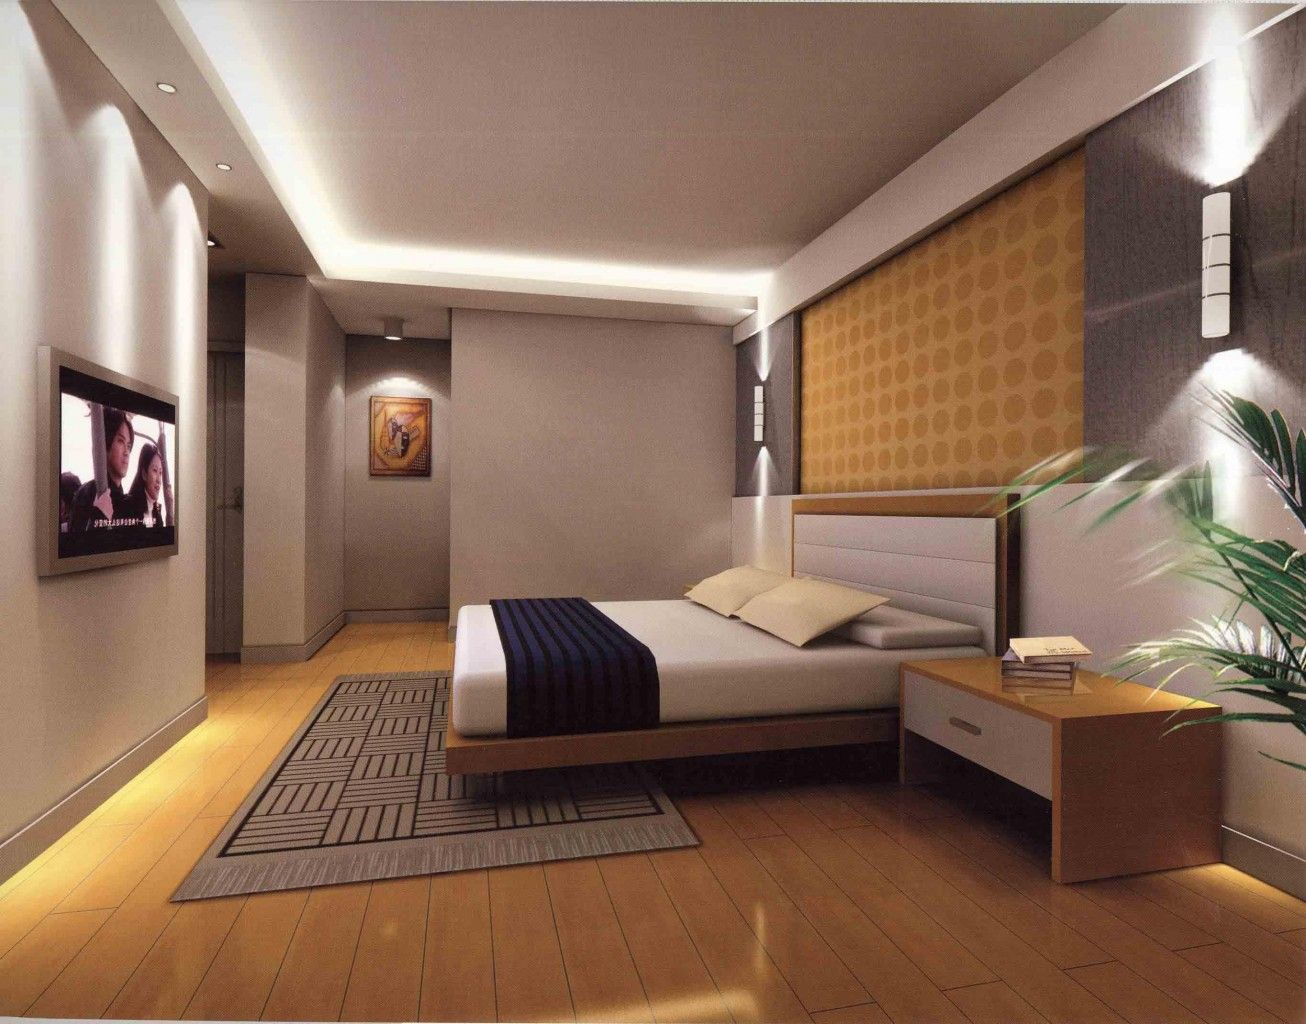 Modern Elegant Master Bedroom Decorating Ideas Awesome Interior Design With King Size Bed Fur Rug Flat Tv Screen Sconcee For